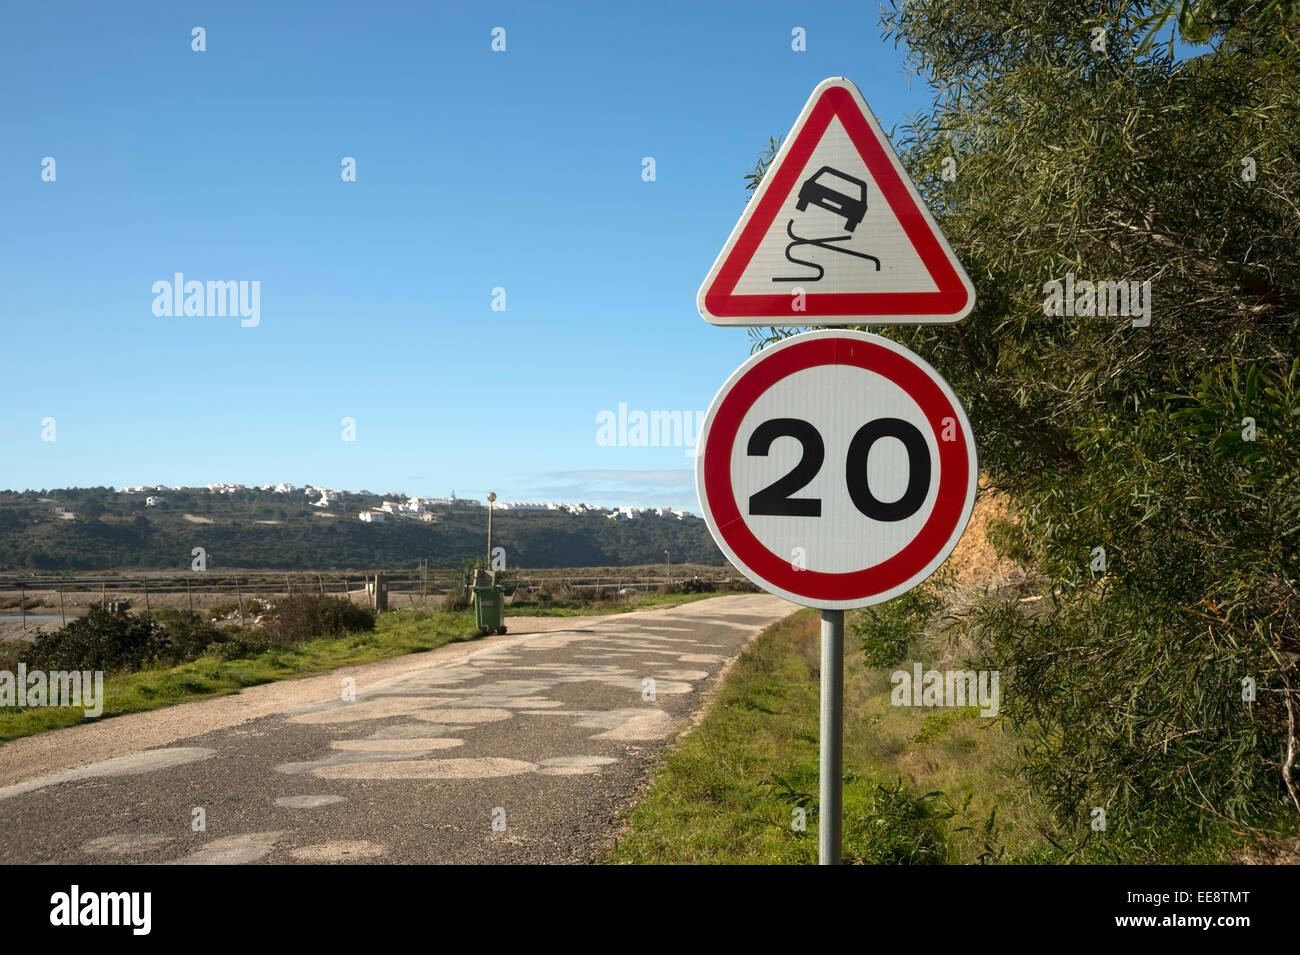 20 kph mph and slippery road surface road signs - Stock Image